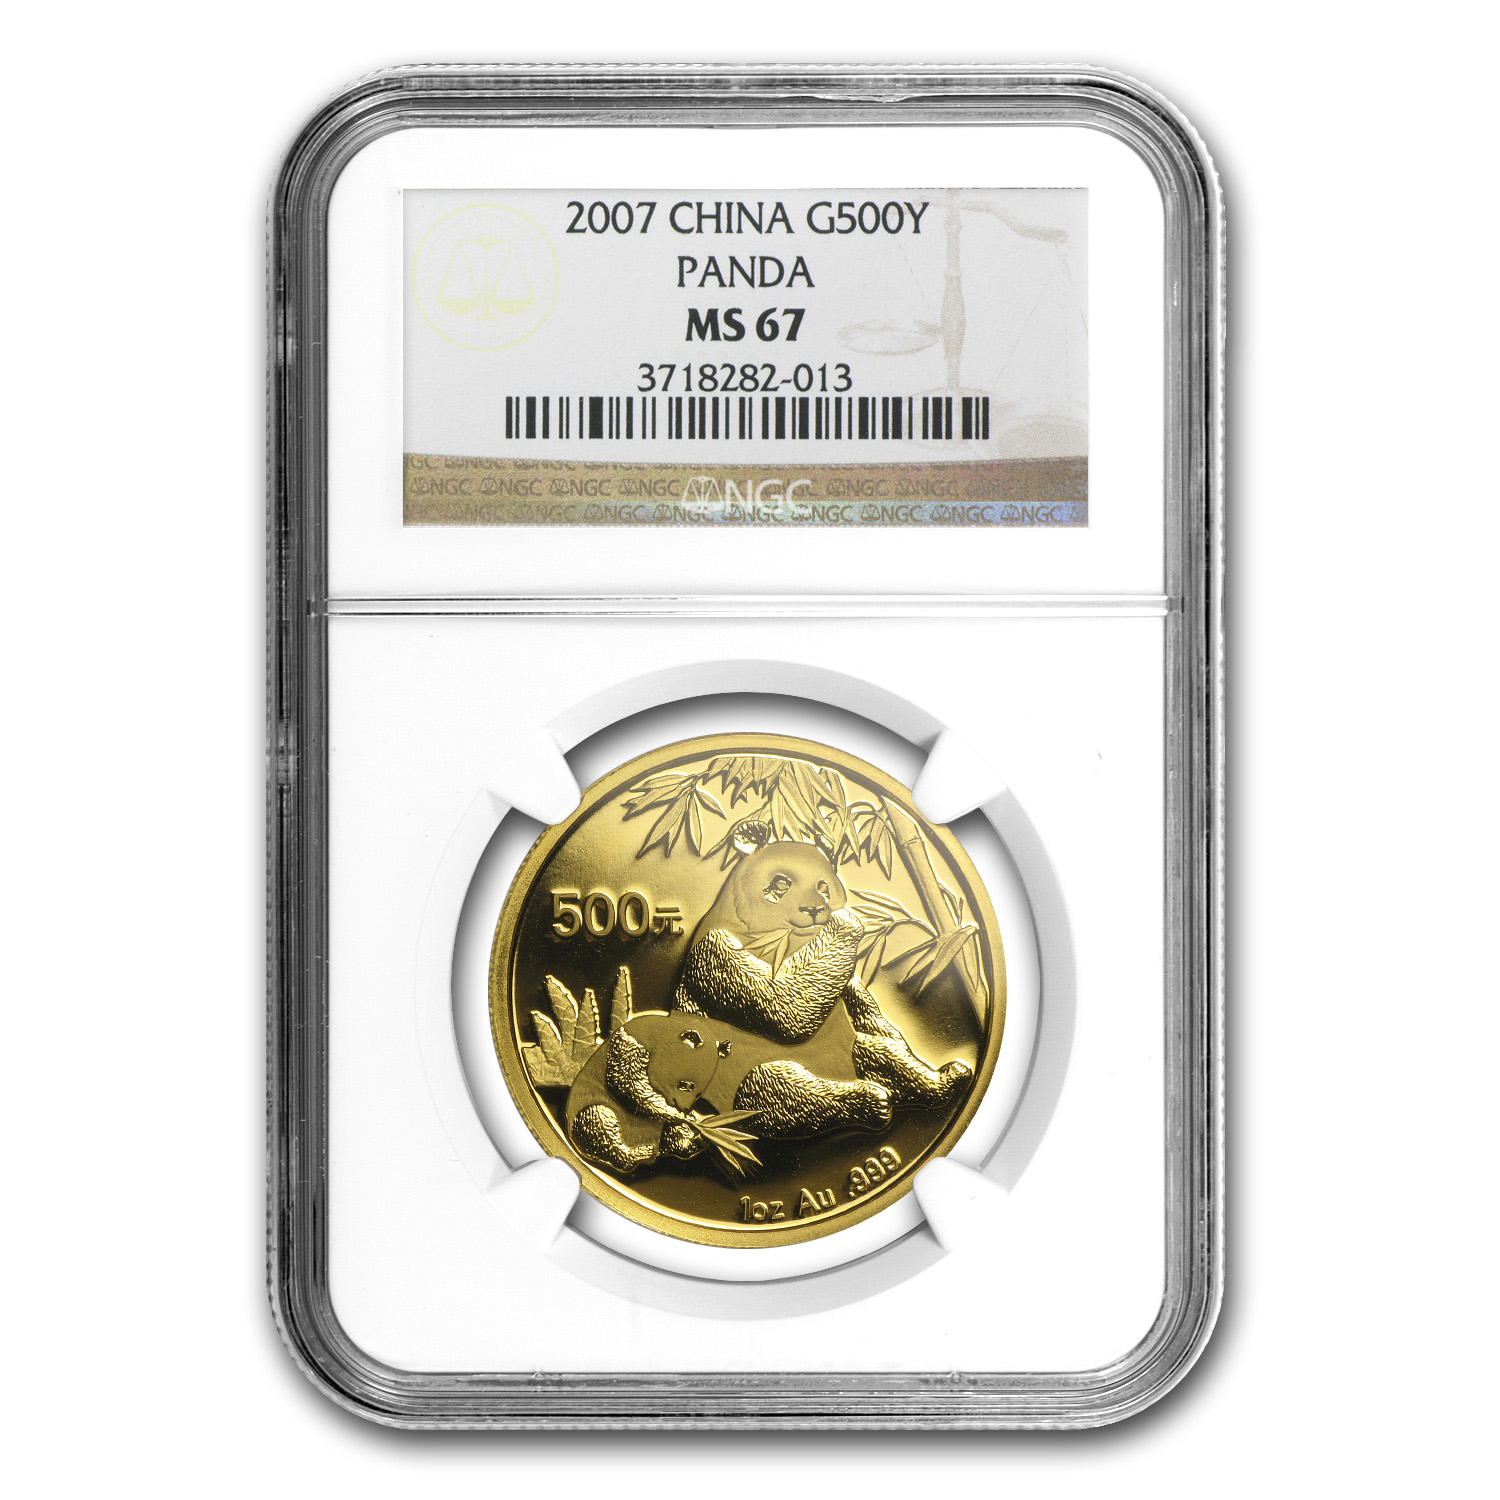 2007 1 oz Gold Chinese Panda MS-67 NGC